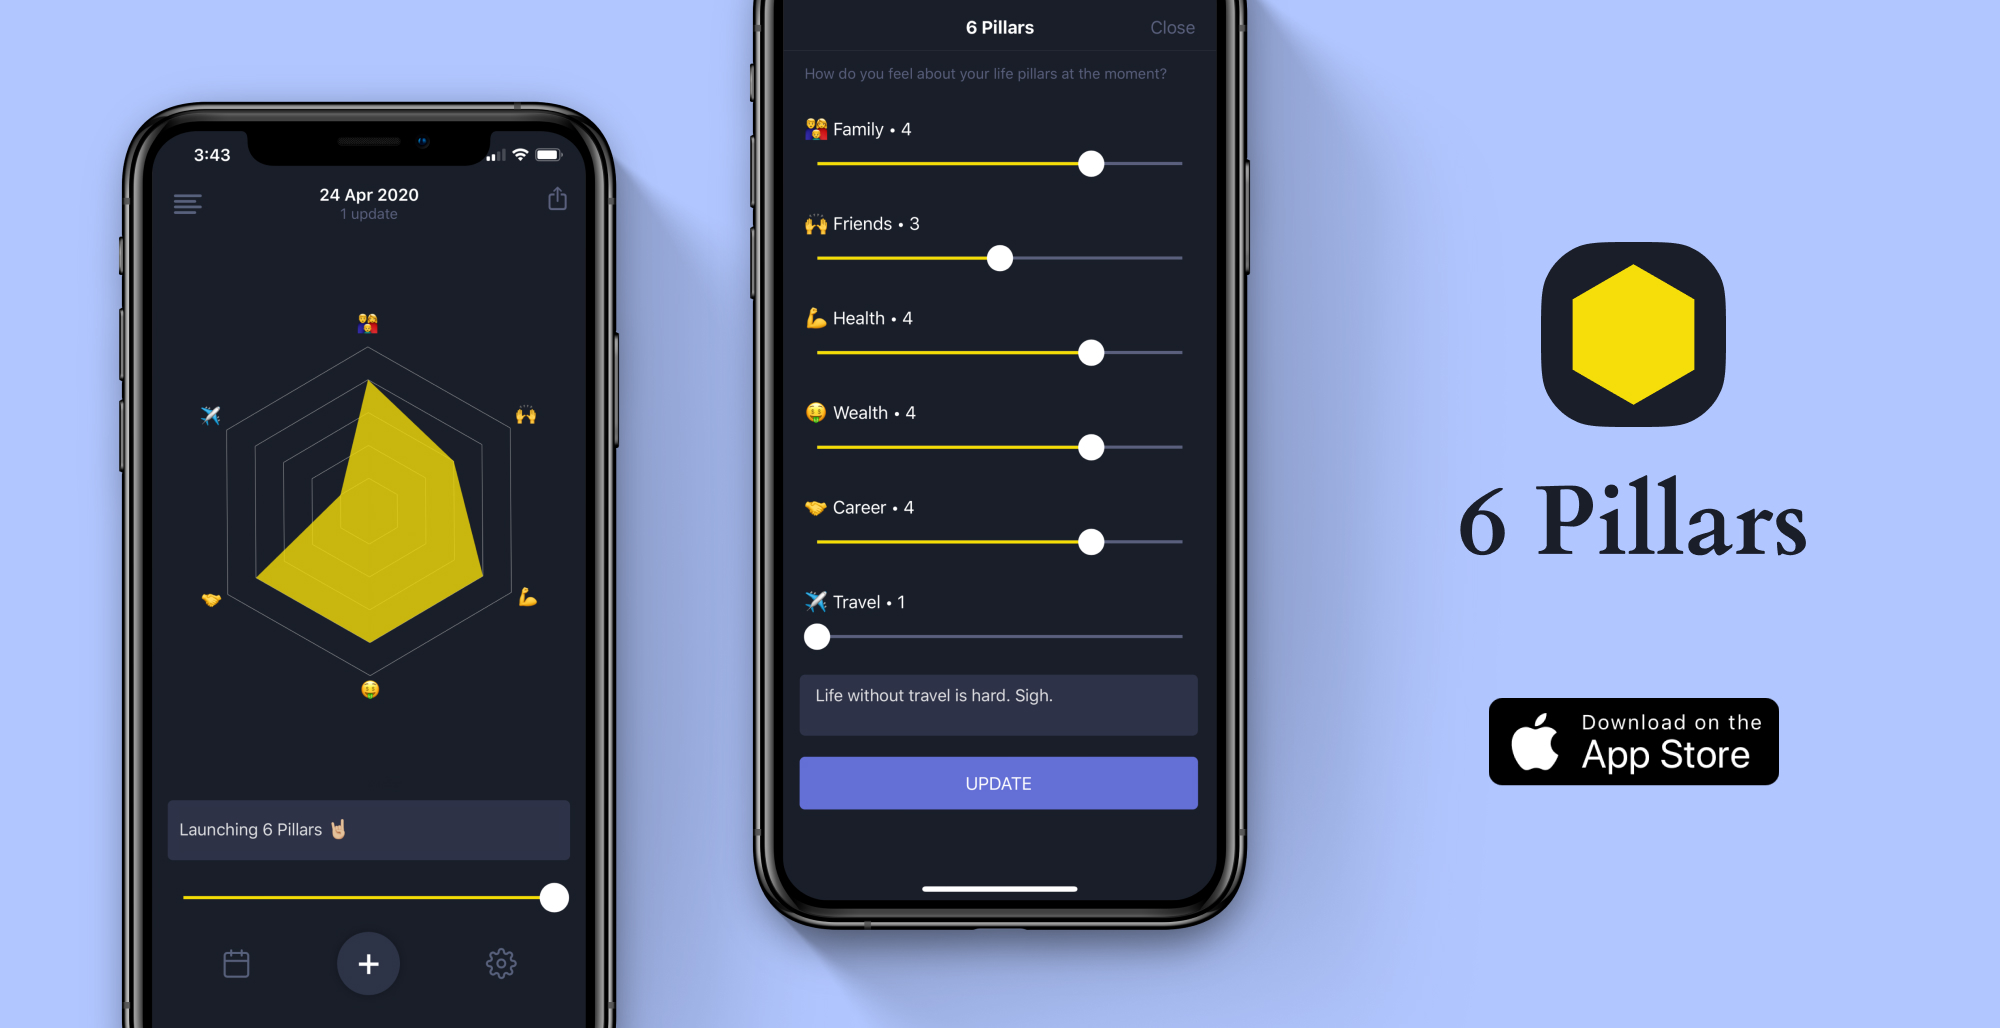 6 Pillars is an iOS app built by Kavisha to define, track and reflect periodically on the core pillars of your life that lead to a better version of you.